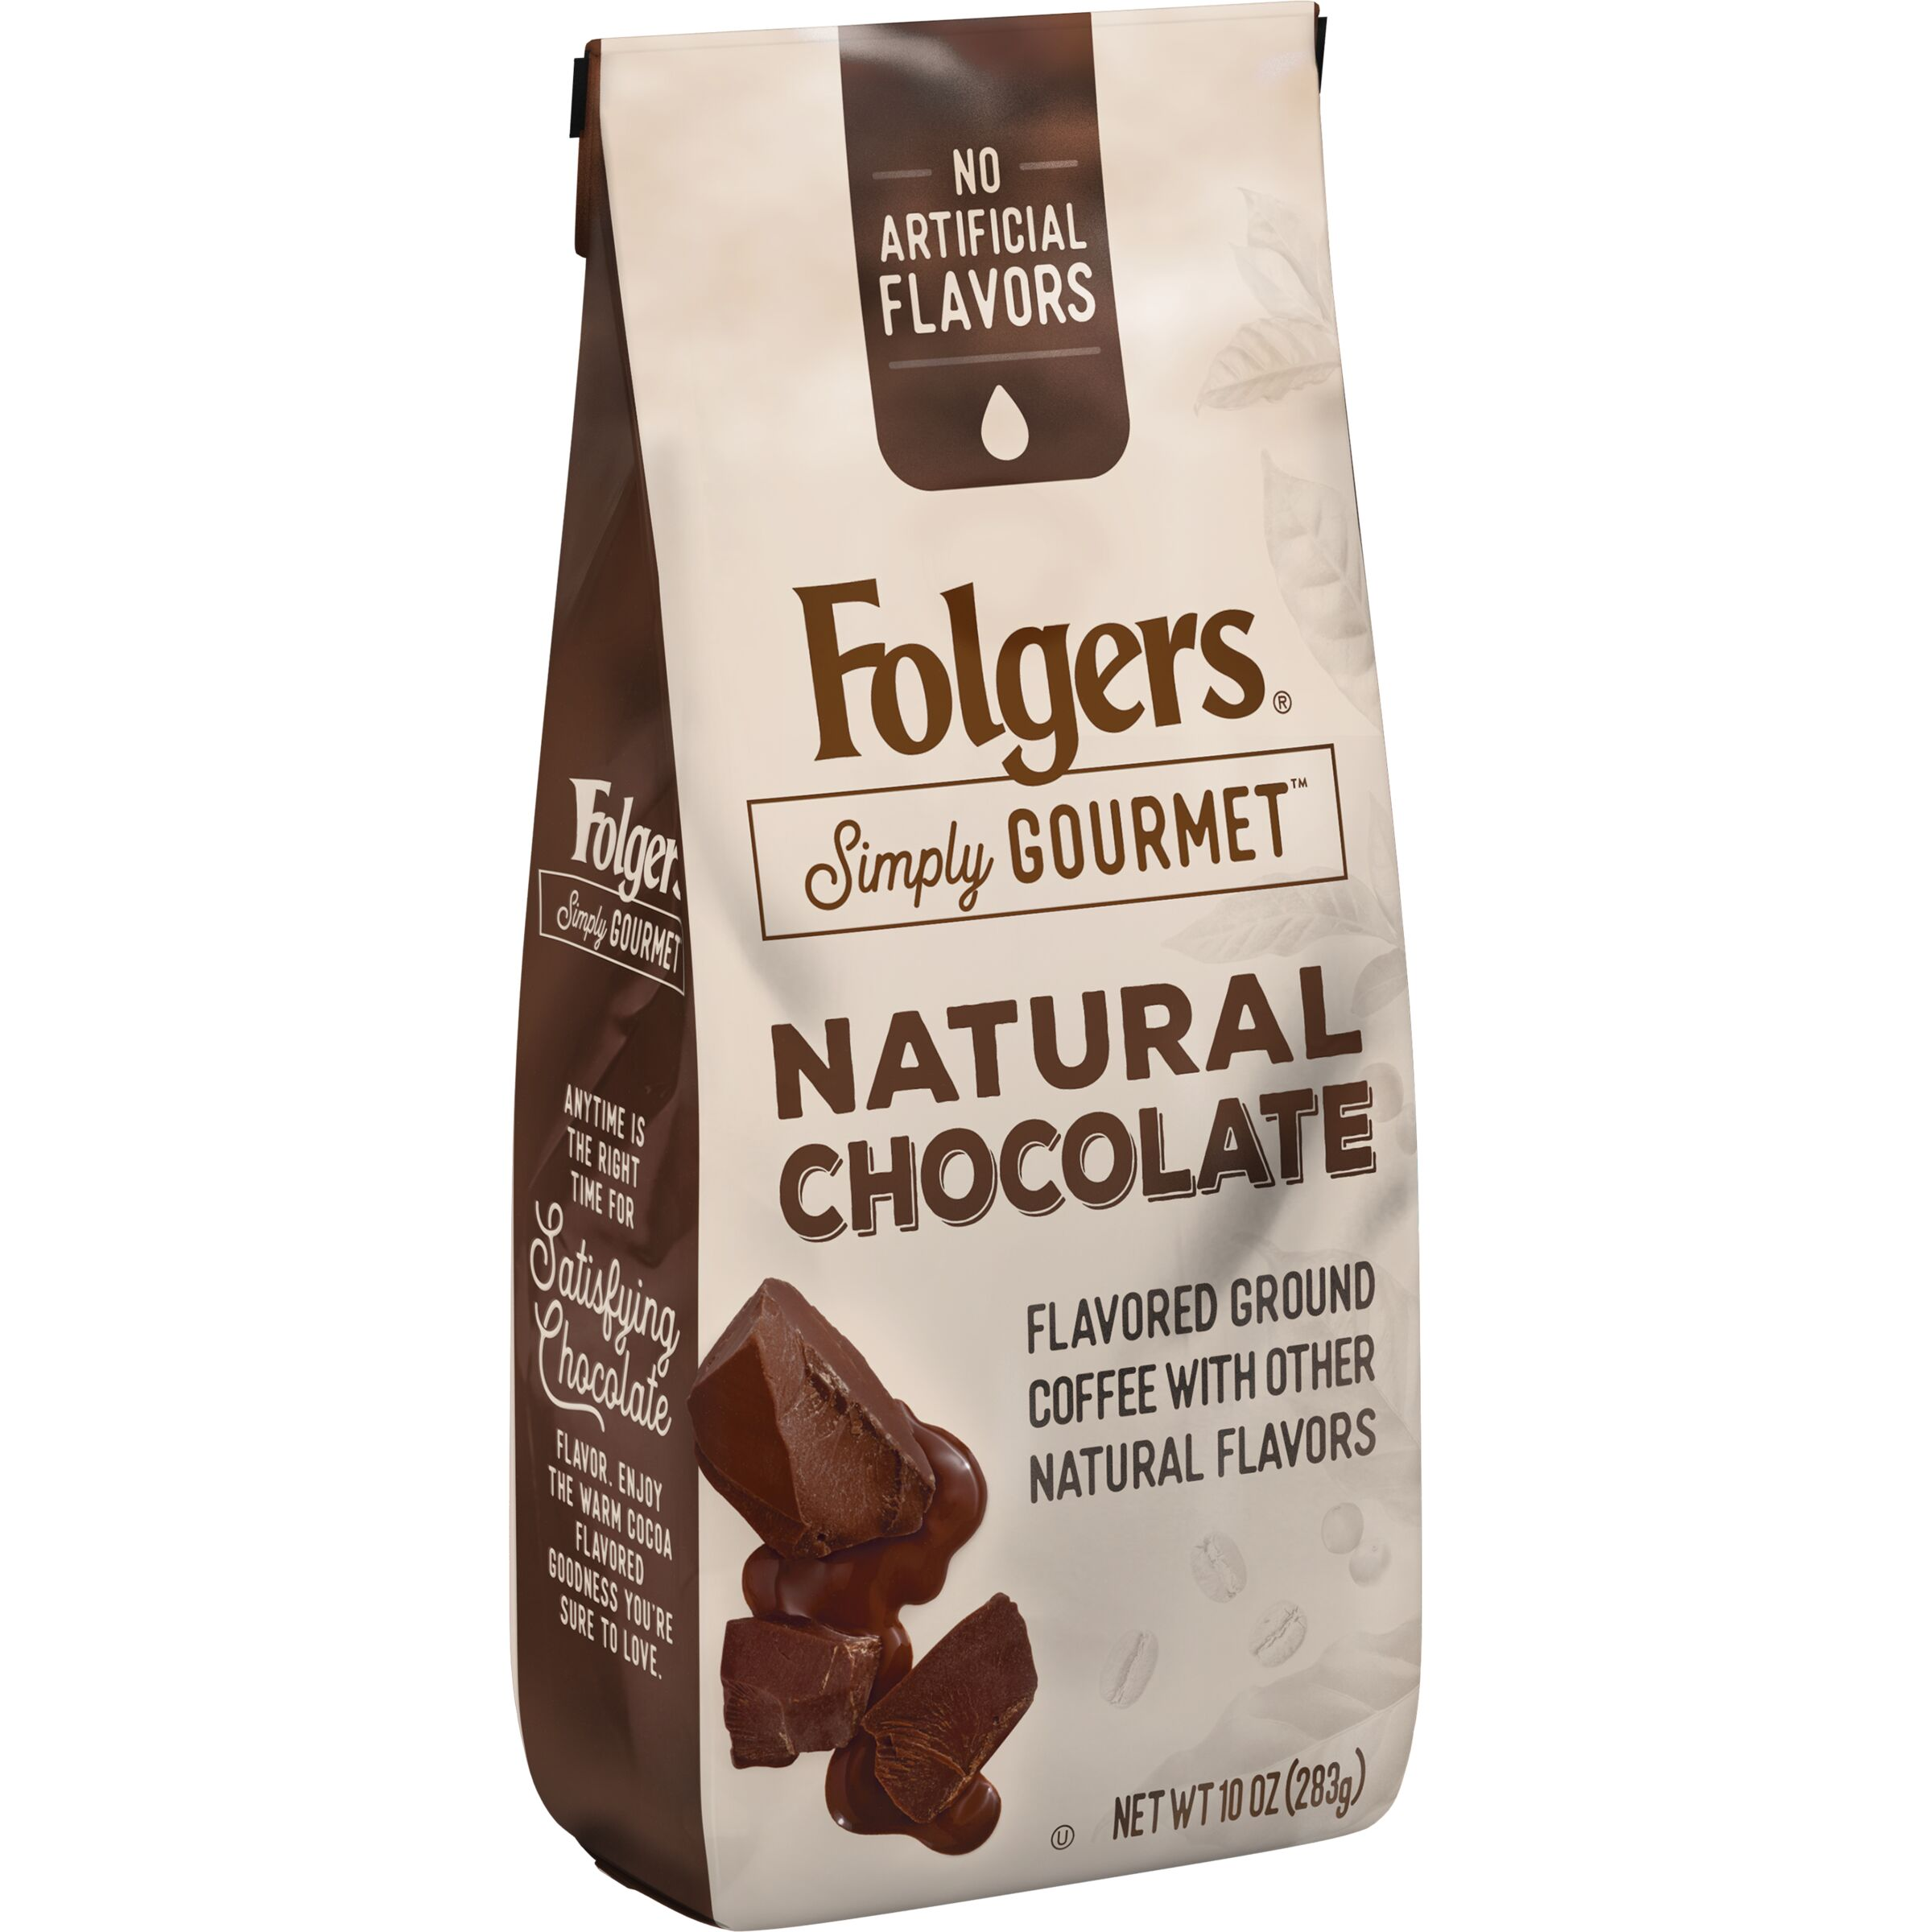 Folgers Simply Gourmet Natural Chocolate Flavored Ground Coffee